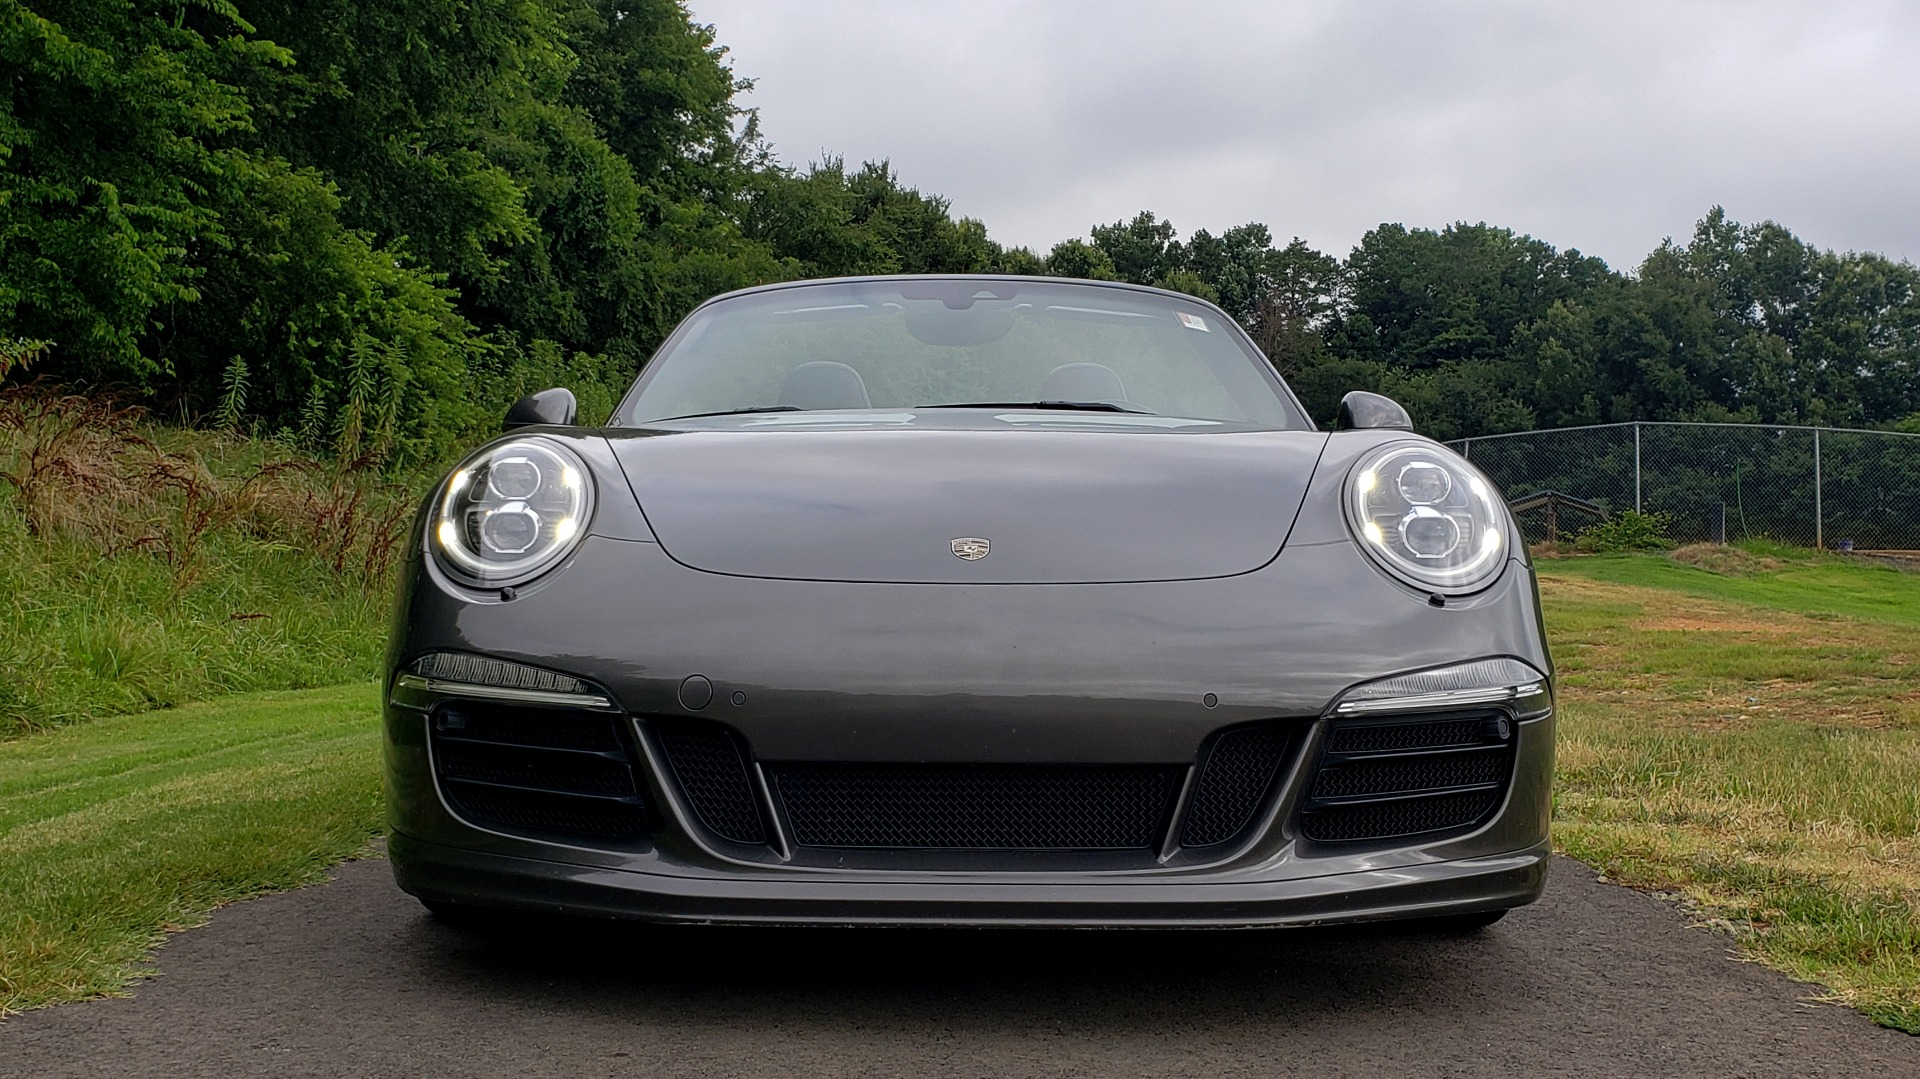 Used 2015 Porsche 911 CARRERA GTS / CONVERTIBLE / NAV / CHRONO / BOSE / REARVIEW for sale Sold at Formula Imports in Charlotte NC 28227 15